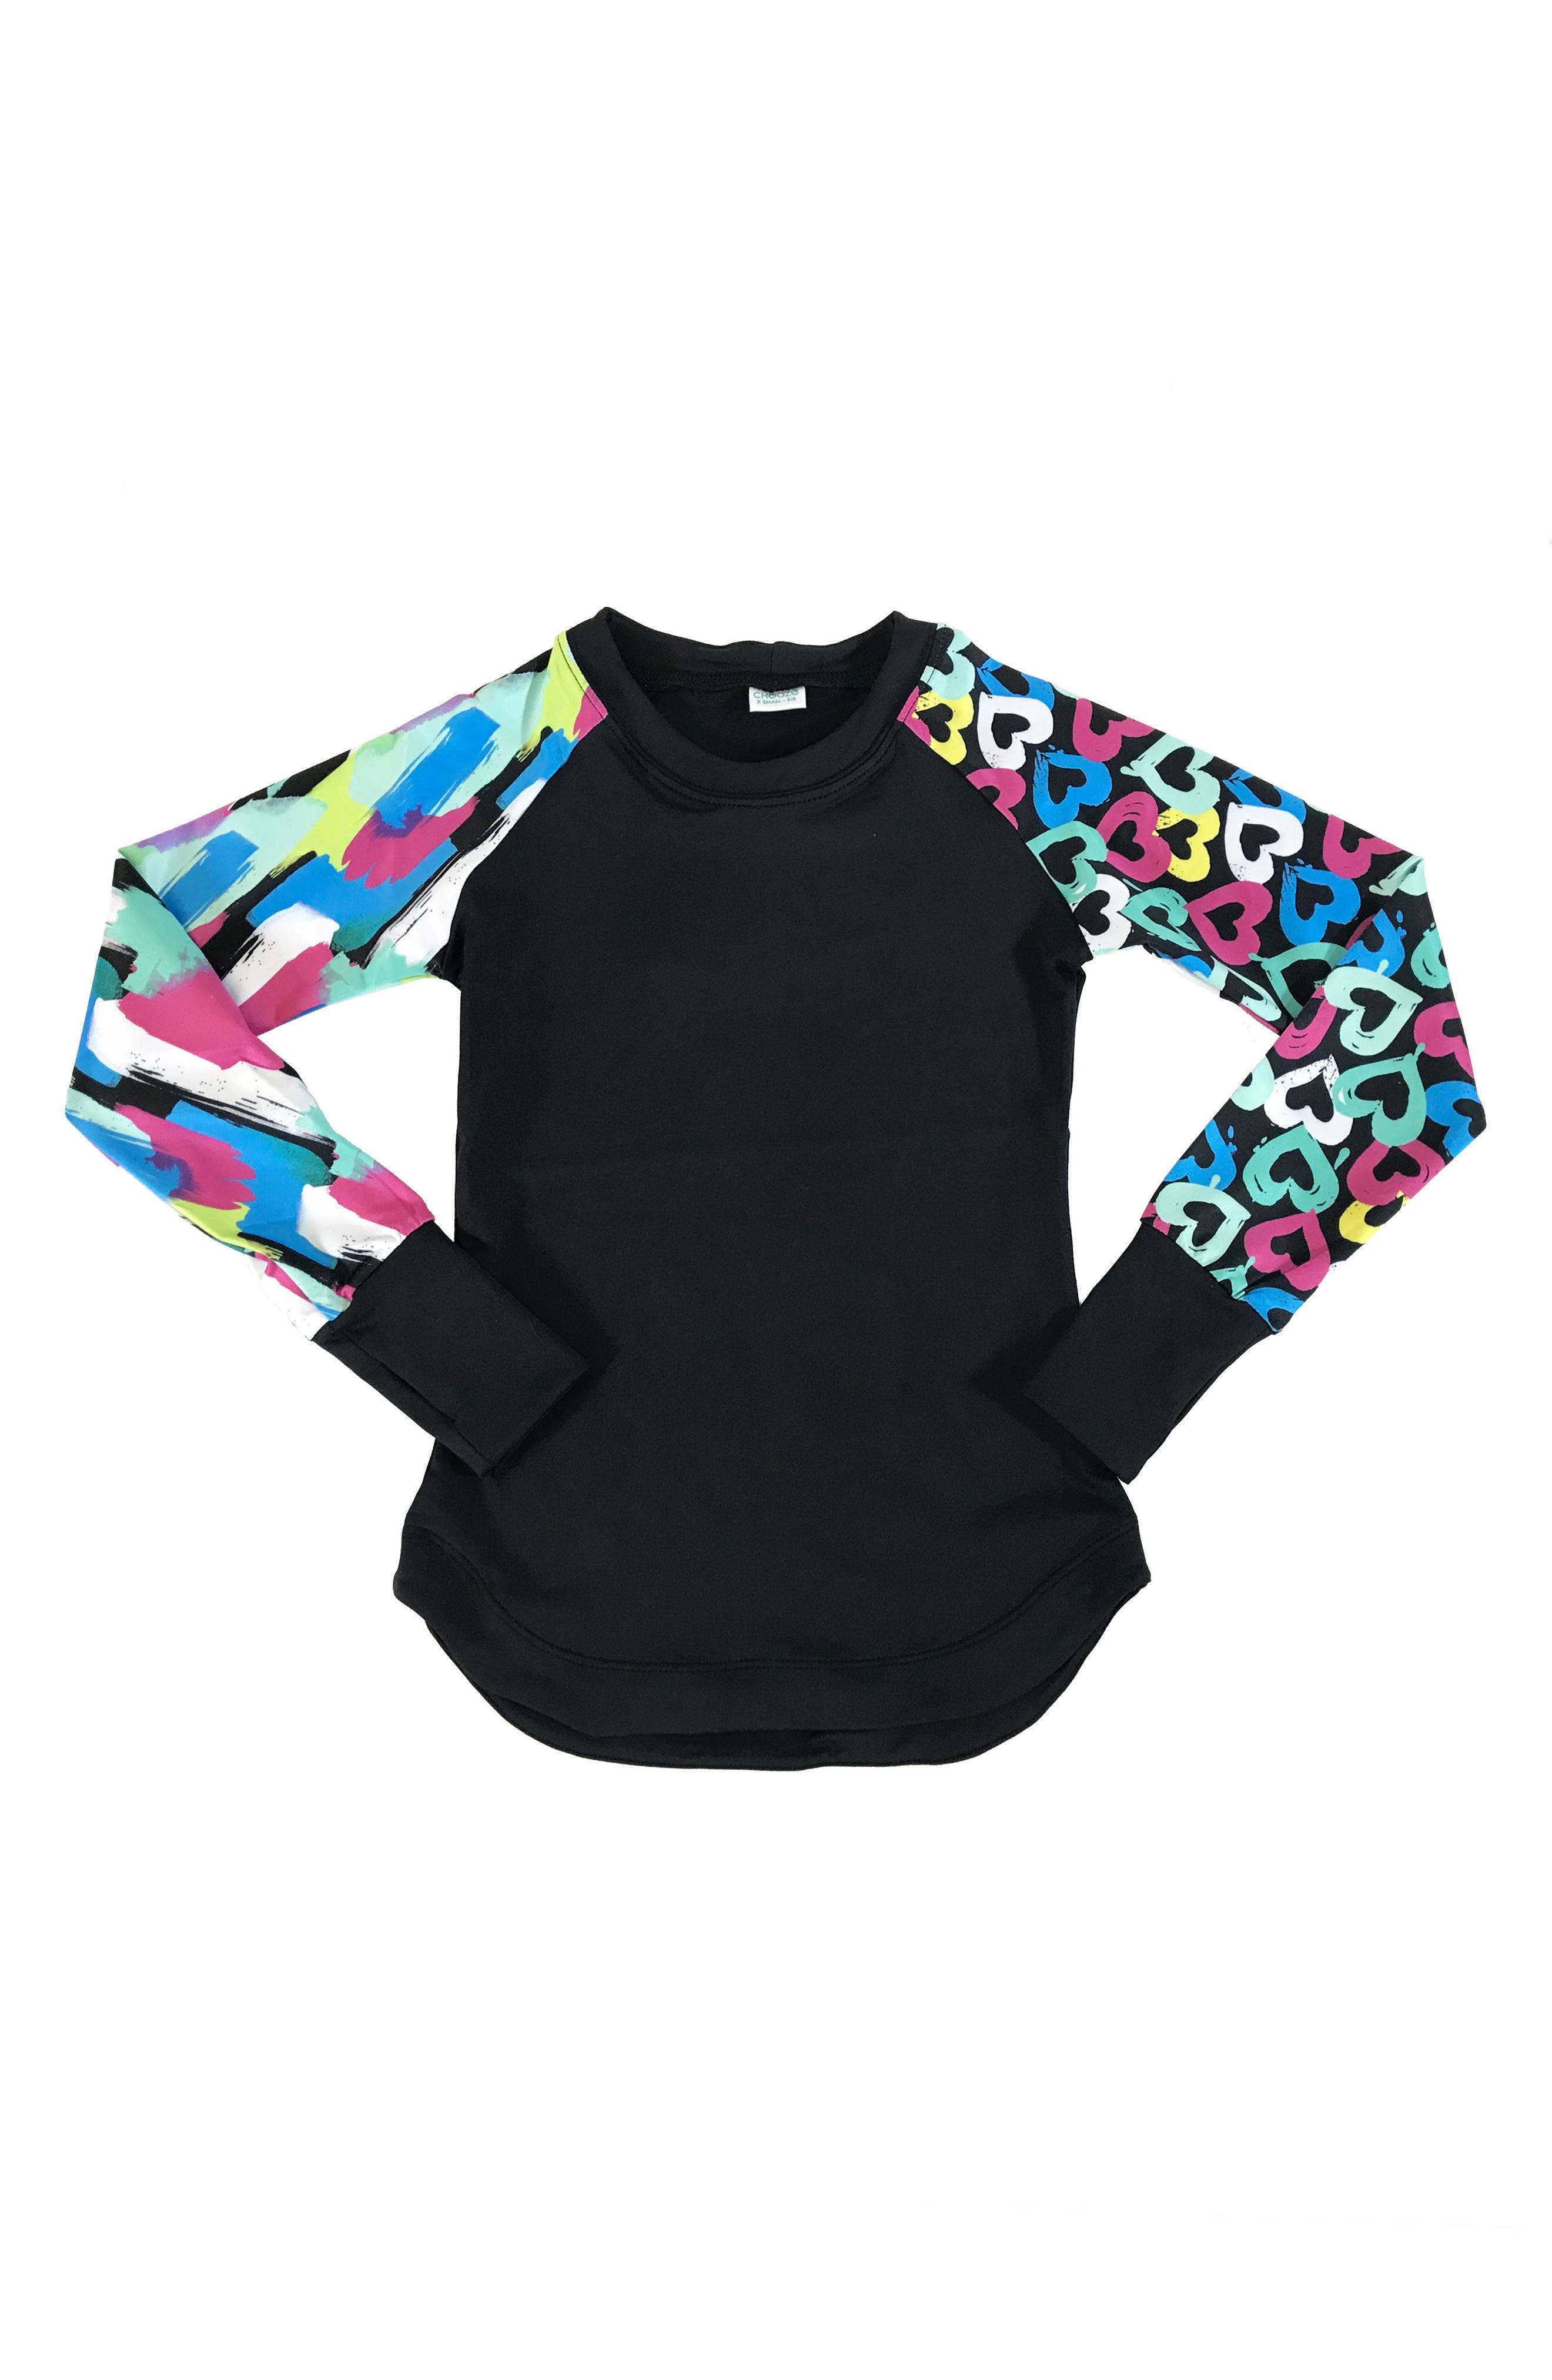 Sportee Raglan Sleeve Tee,                             Alternate thumbnail 2, color,                             007